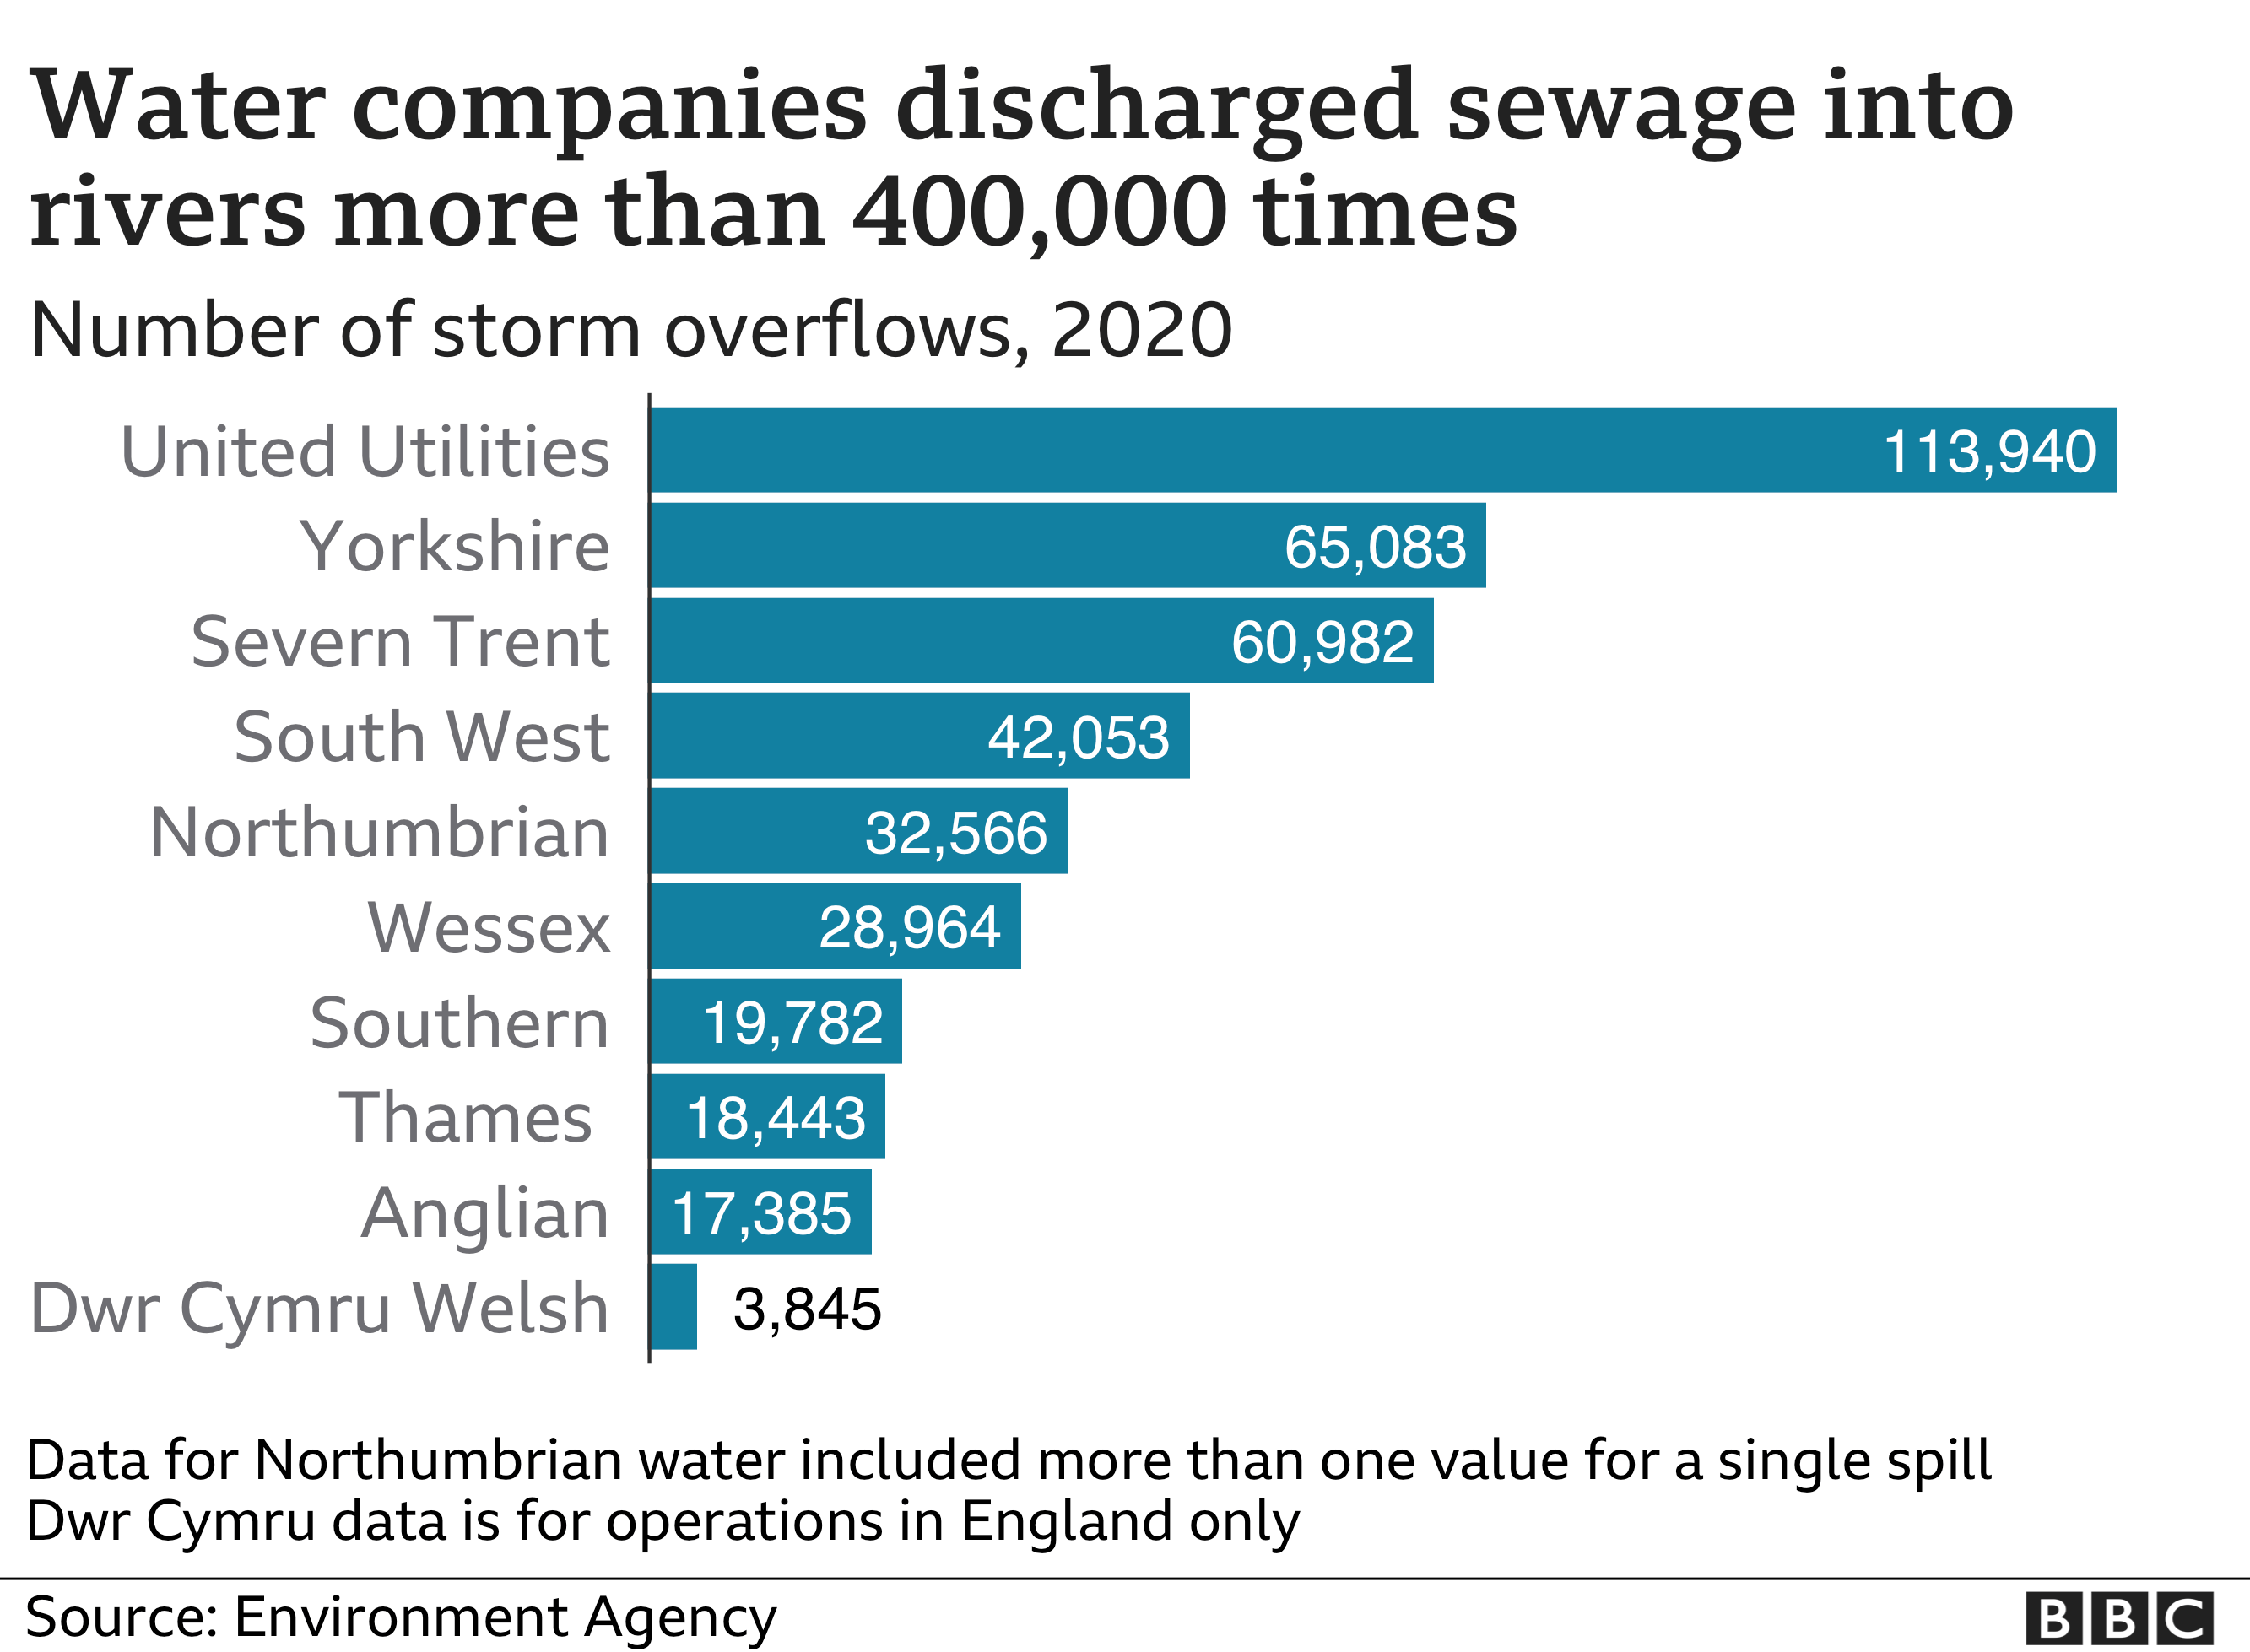 Sewage discharged into rivers 400,000 times in 2020 thumbnail